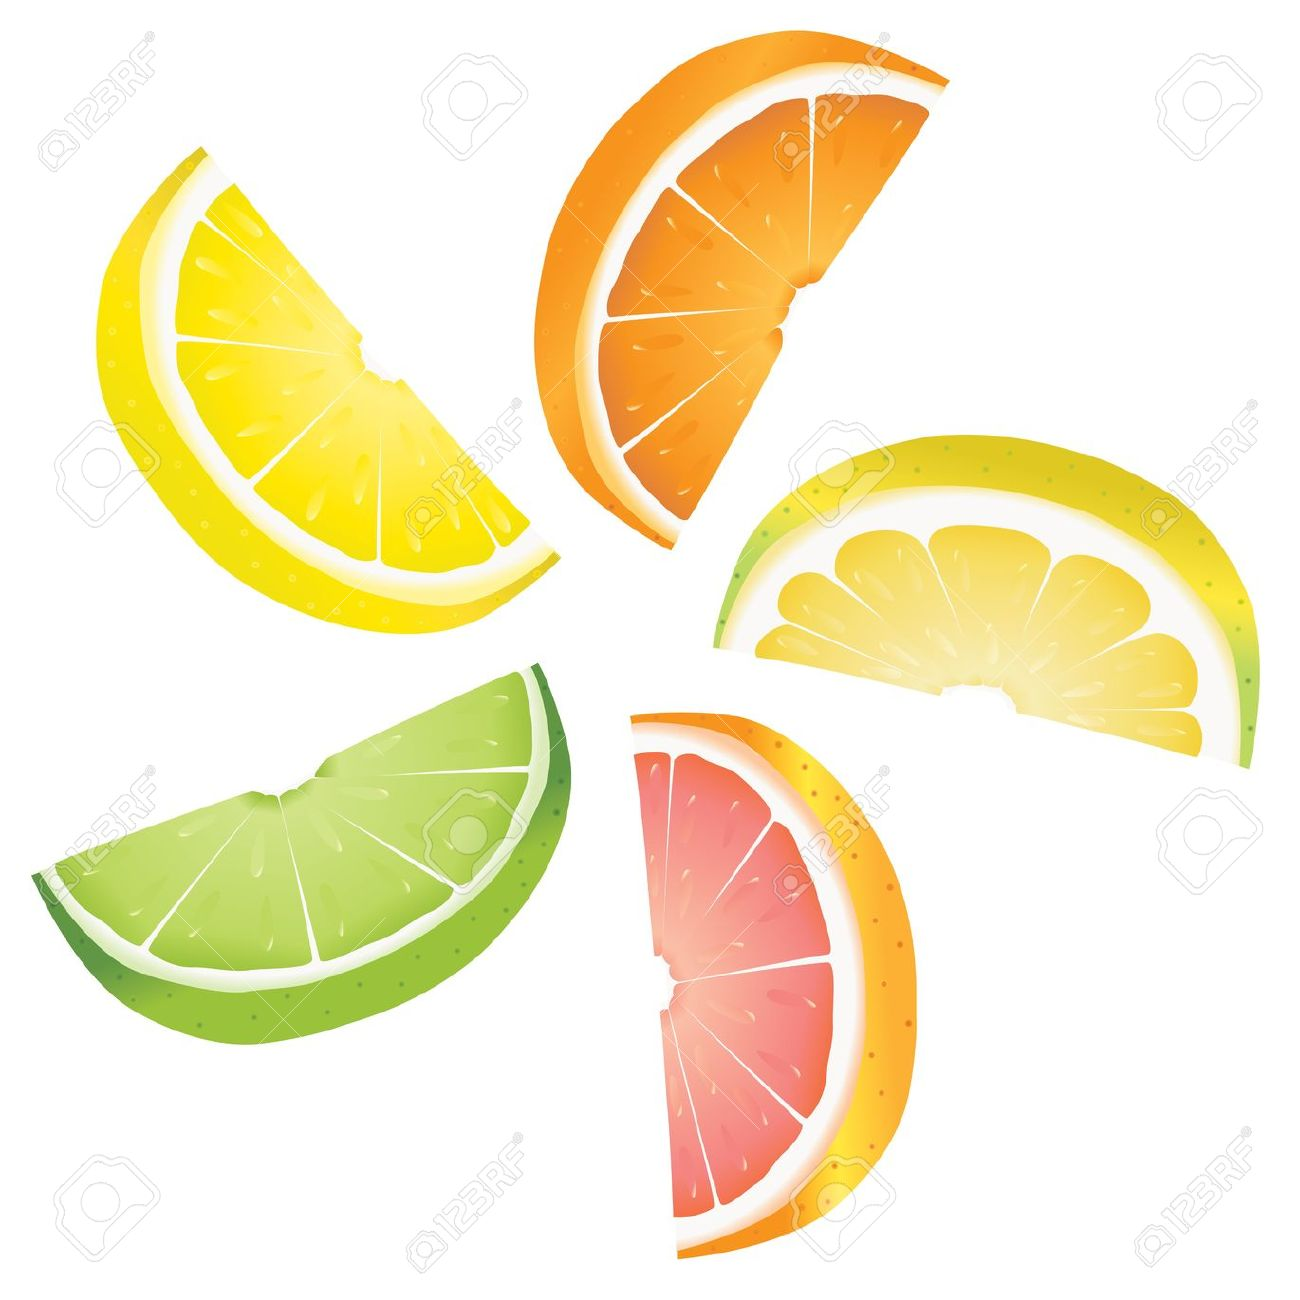 A Selection Of Citrus Fruit Slices Arranged Into A Revolving.